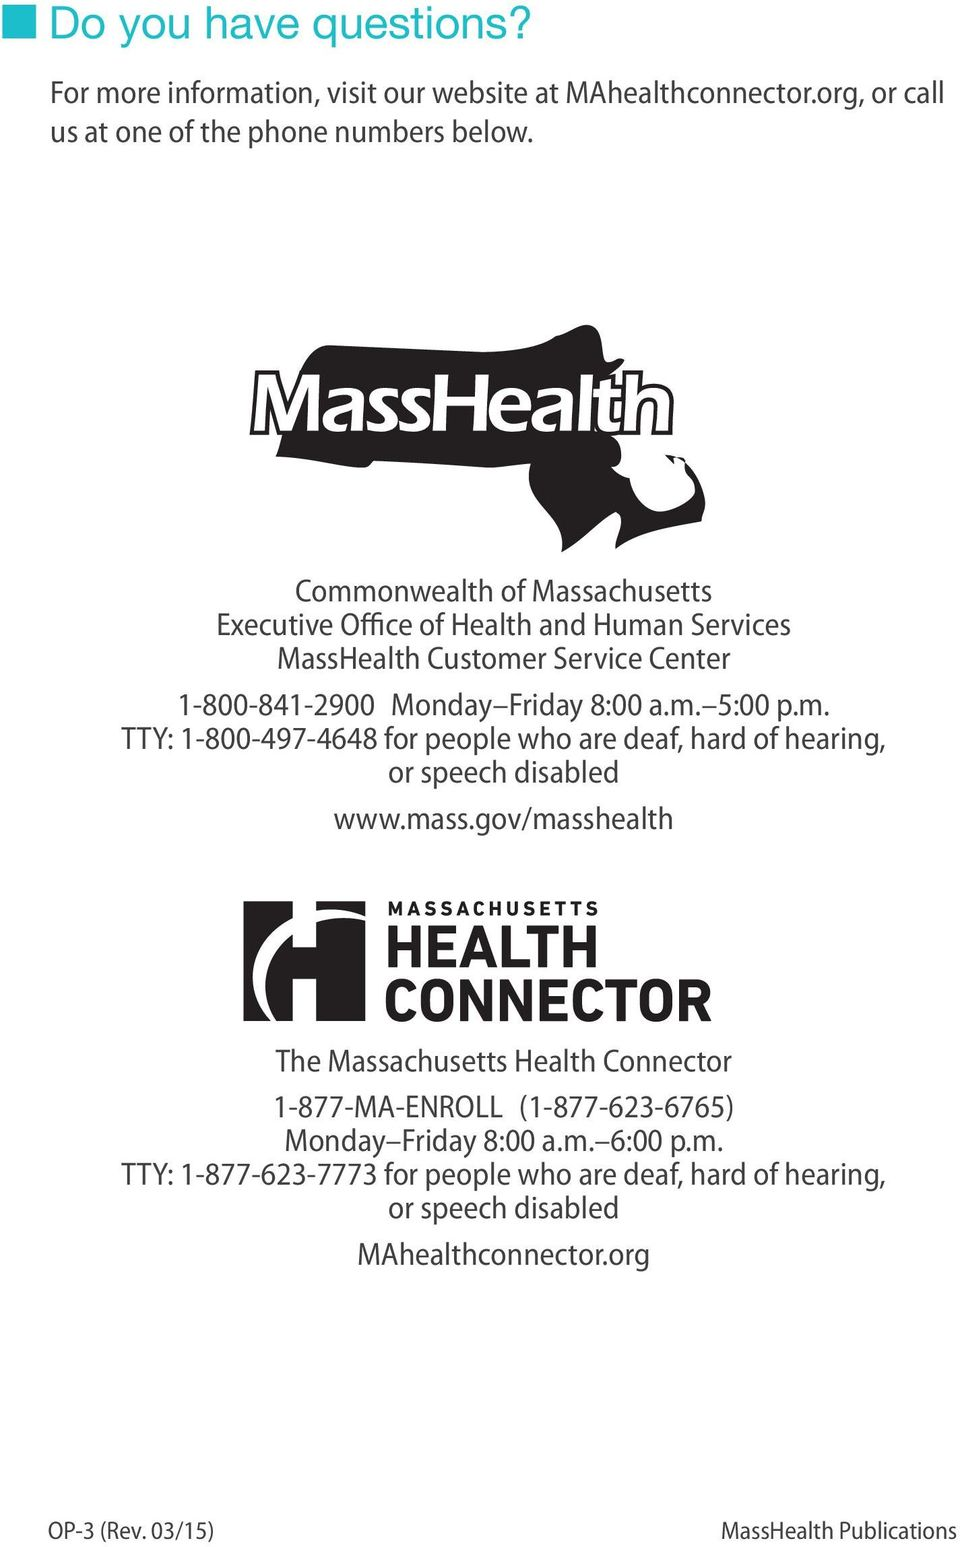 mass.gov/masshealth The Massachusetts Health Connector 1-877-MA-ENROLL (1-877-623-6765) Monday Friday 8:00 a.m. 6:00 p.m. TTY: 1-877-623-7773 for people who are deaf, hard of hearing, or speech disabled MAhealthconnector.